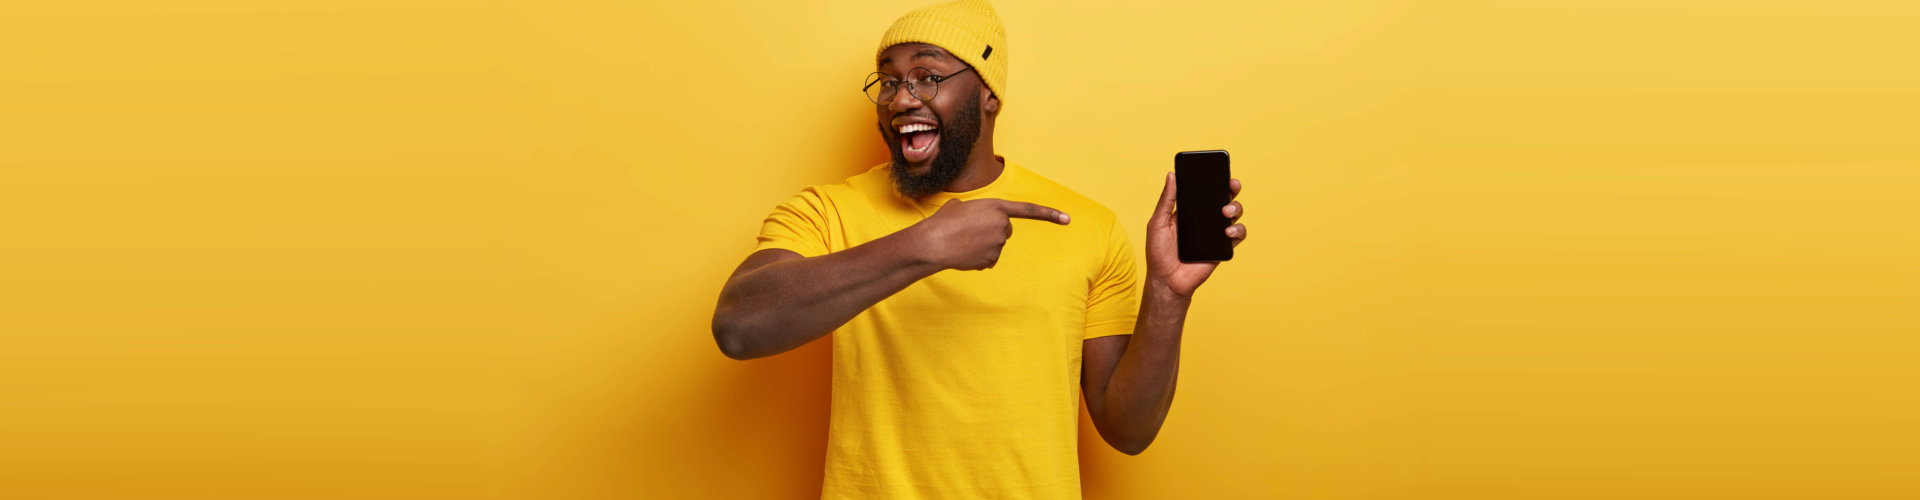 smiling man pointing finger at smartphone screen